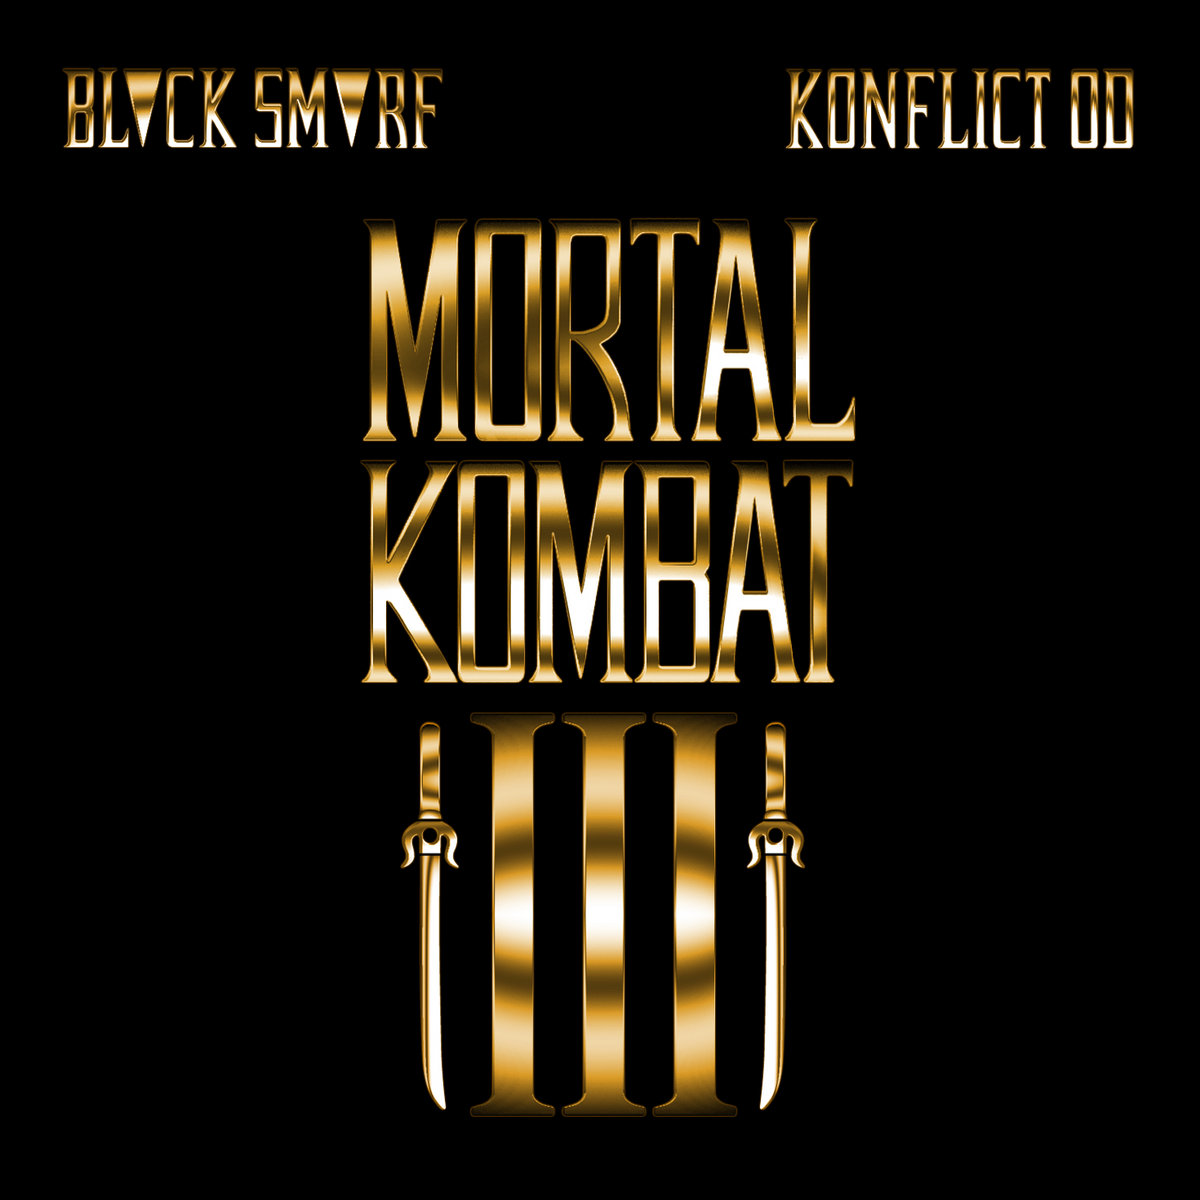 Mortal Kombat 3 | Black Smurf